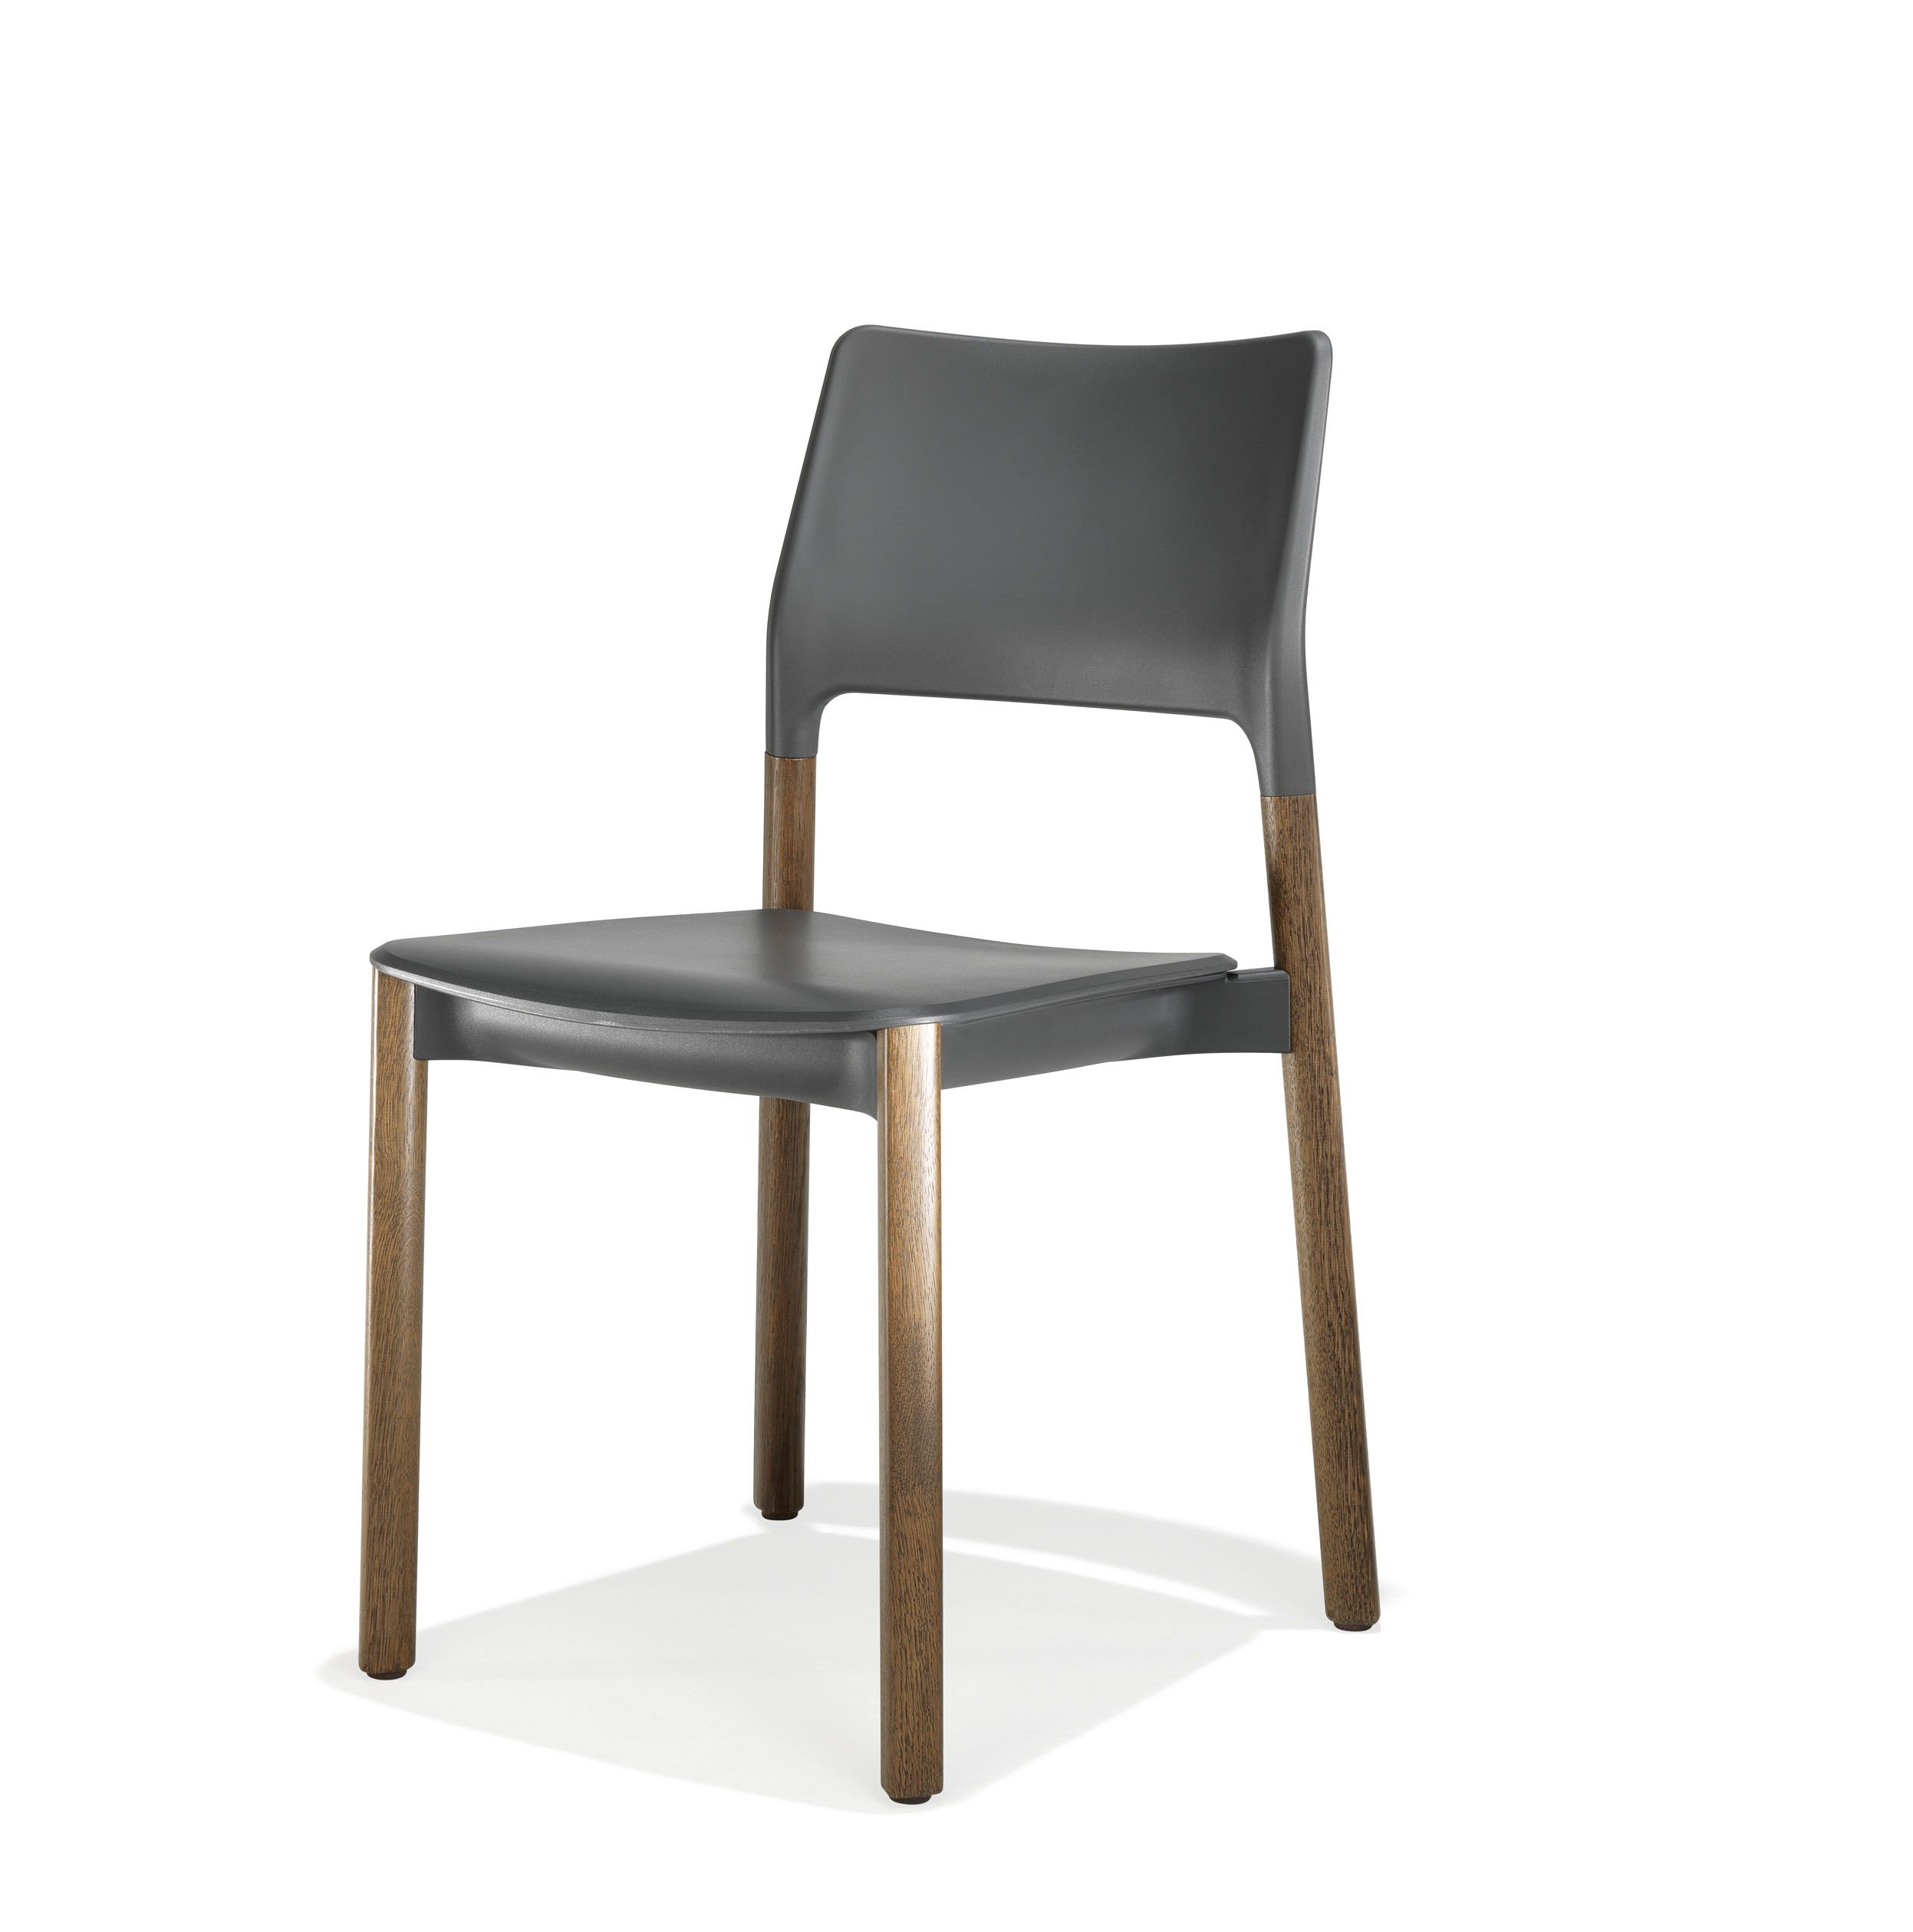 The Wooden Frame Side Chair 3600 2 ARN From Kusch Co Ideally